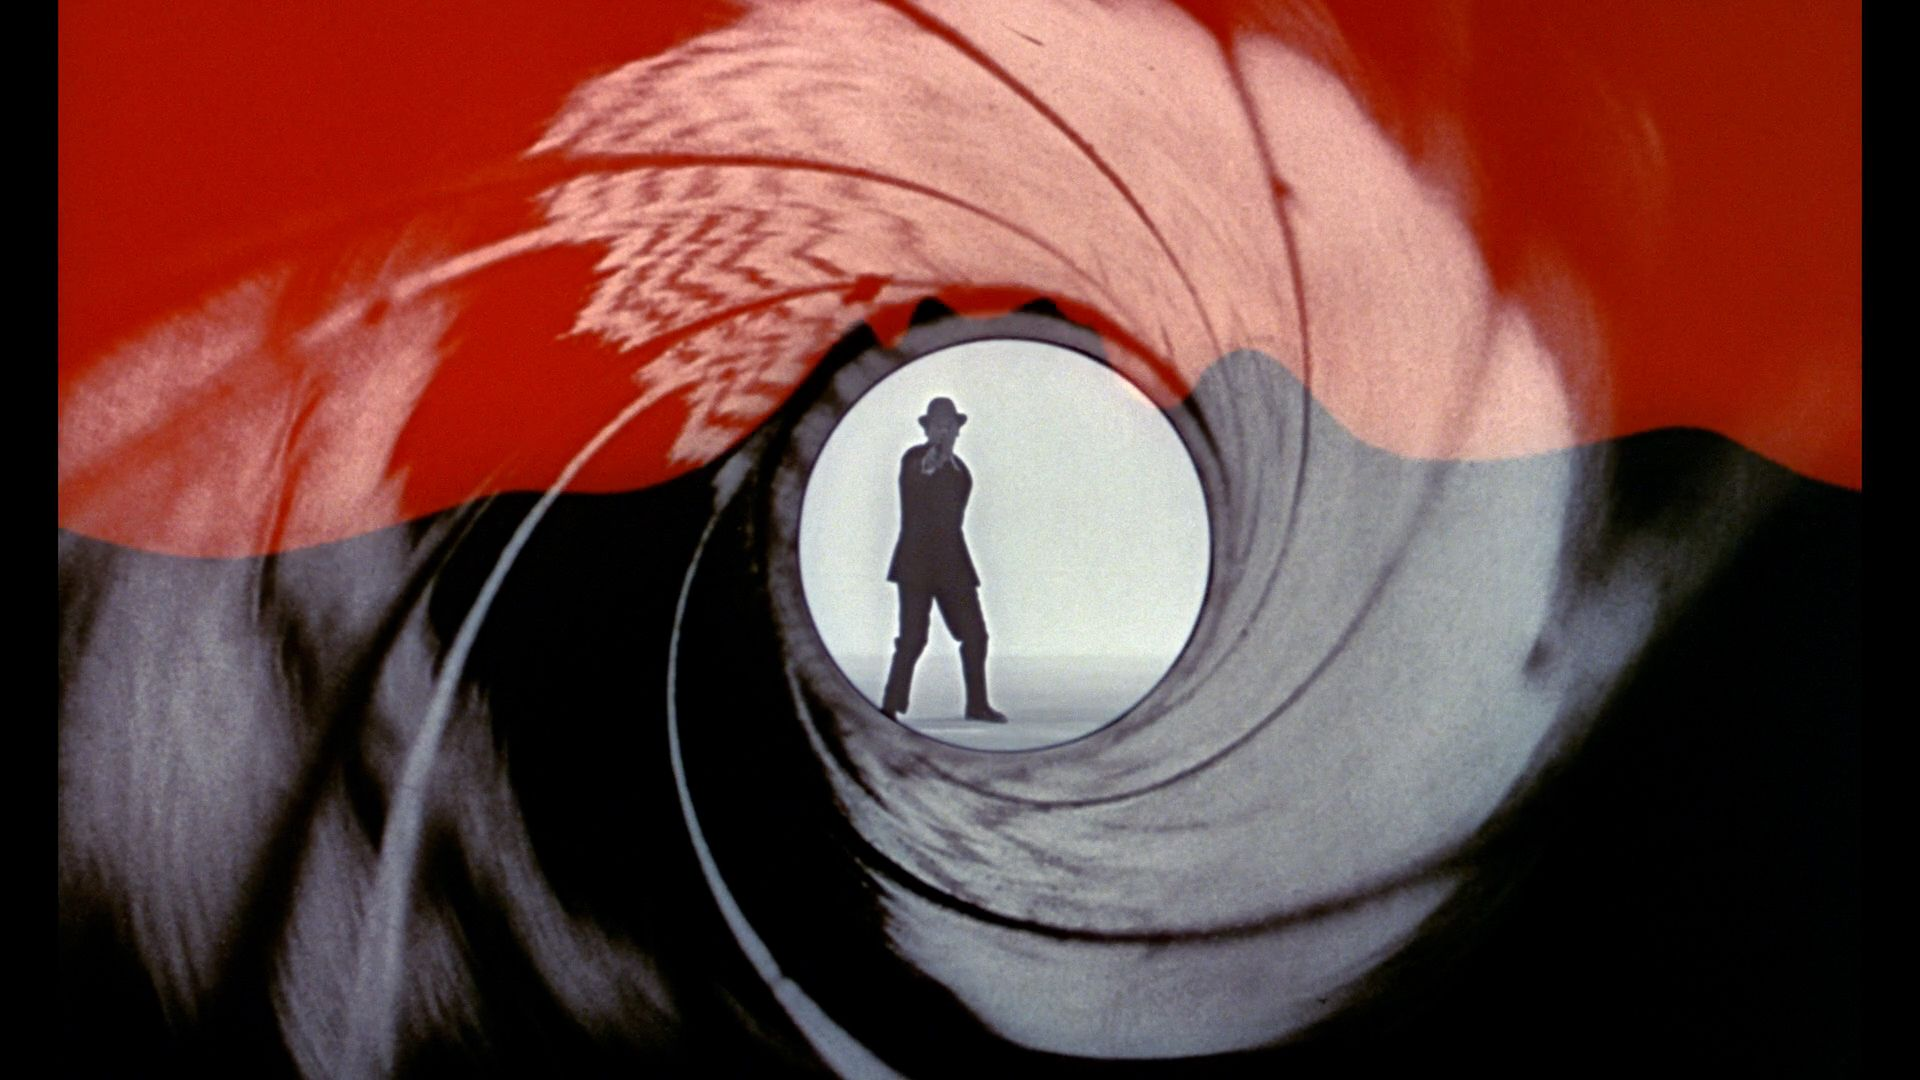 James Bond Ranked: Revisiting 007 Before 'No Time to Die'